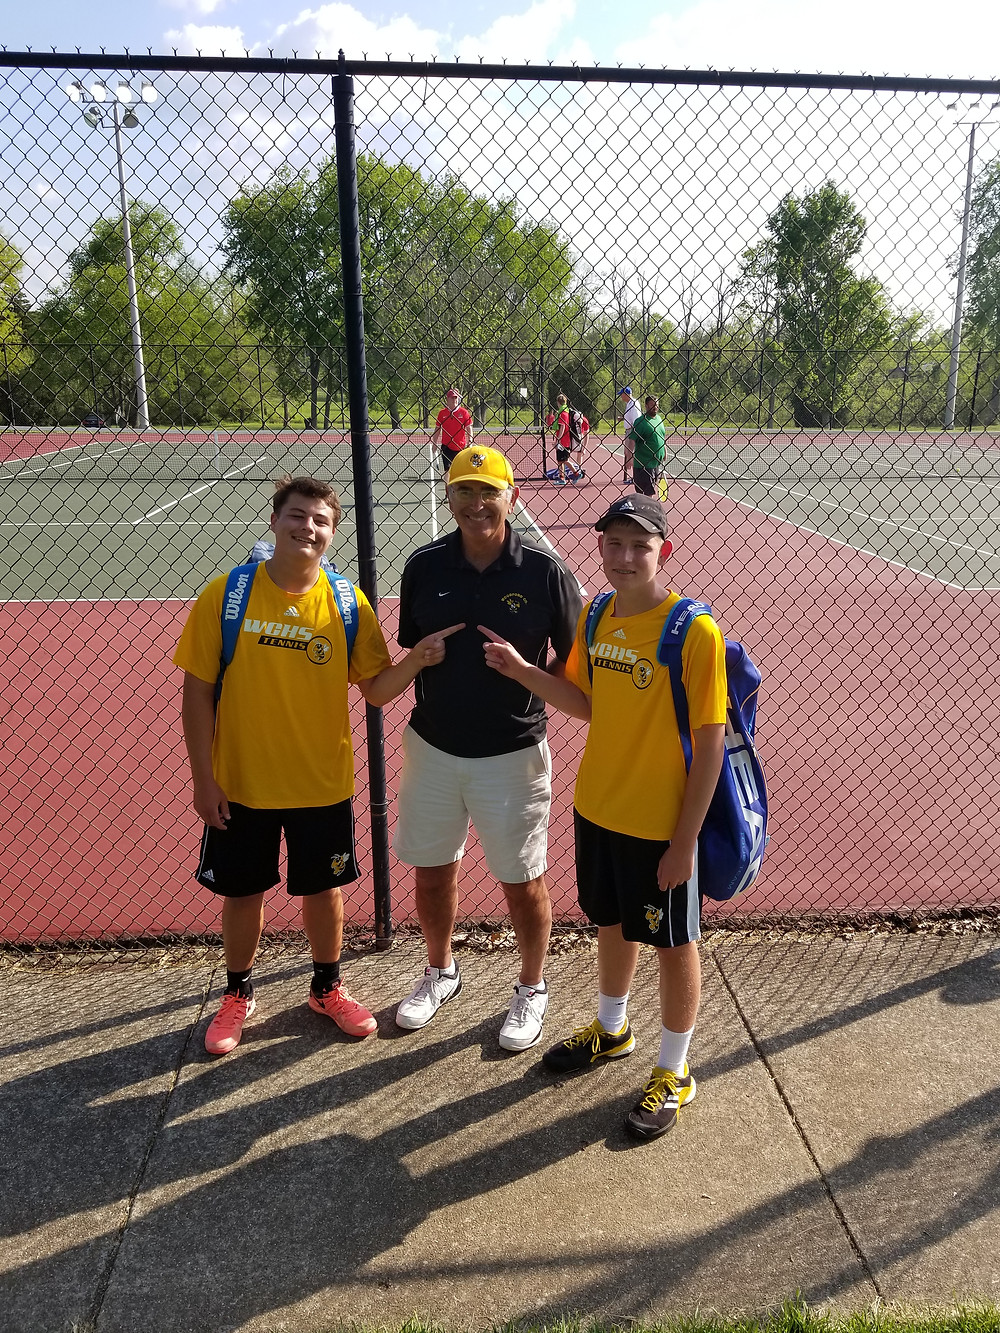 WCHS DOUBLES TEAMMATES, Mason McIntyre, left, and Evan Bentley, right, pose for a photo with Coach Stan Watts. The duo qualified for the state tennis tournament by reaching the regional semifinal. (Photo submitted)